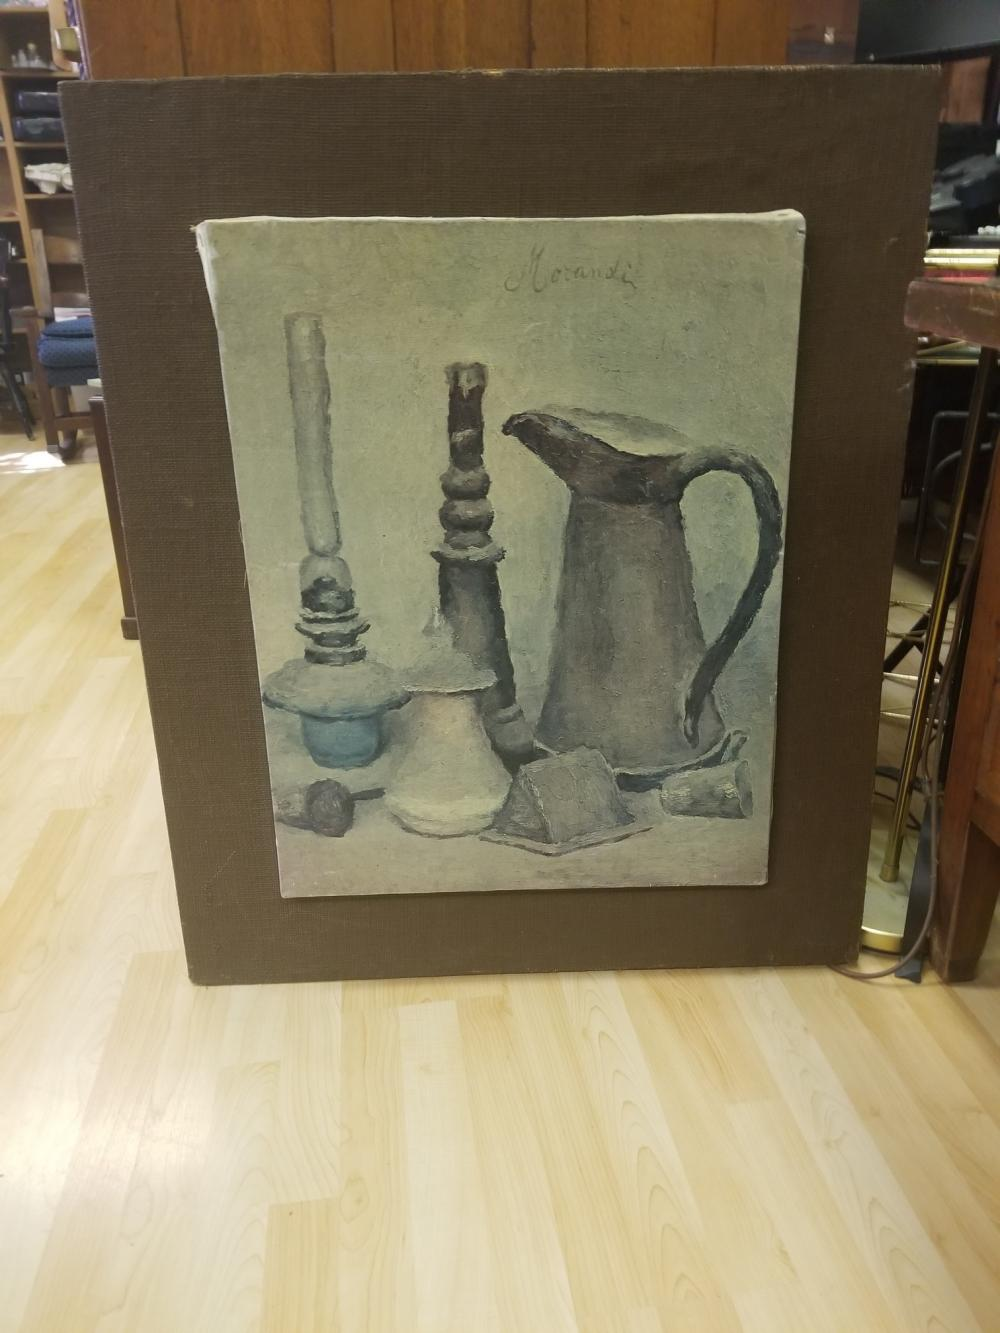 Museum Quality Reproduction of a Still Life by Morandi